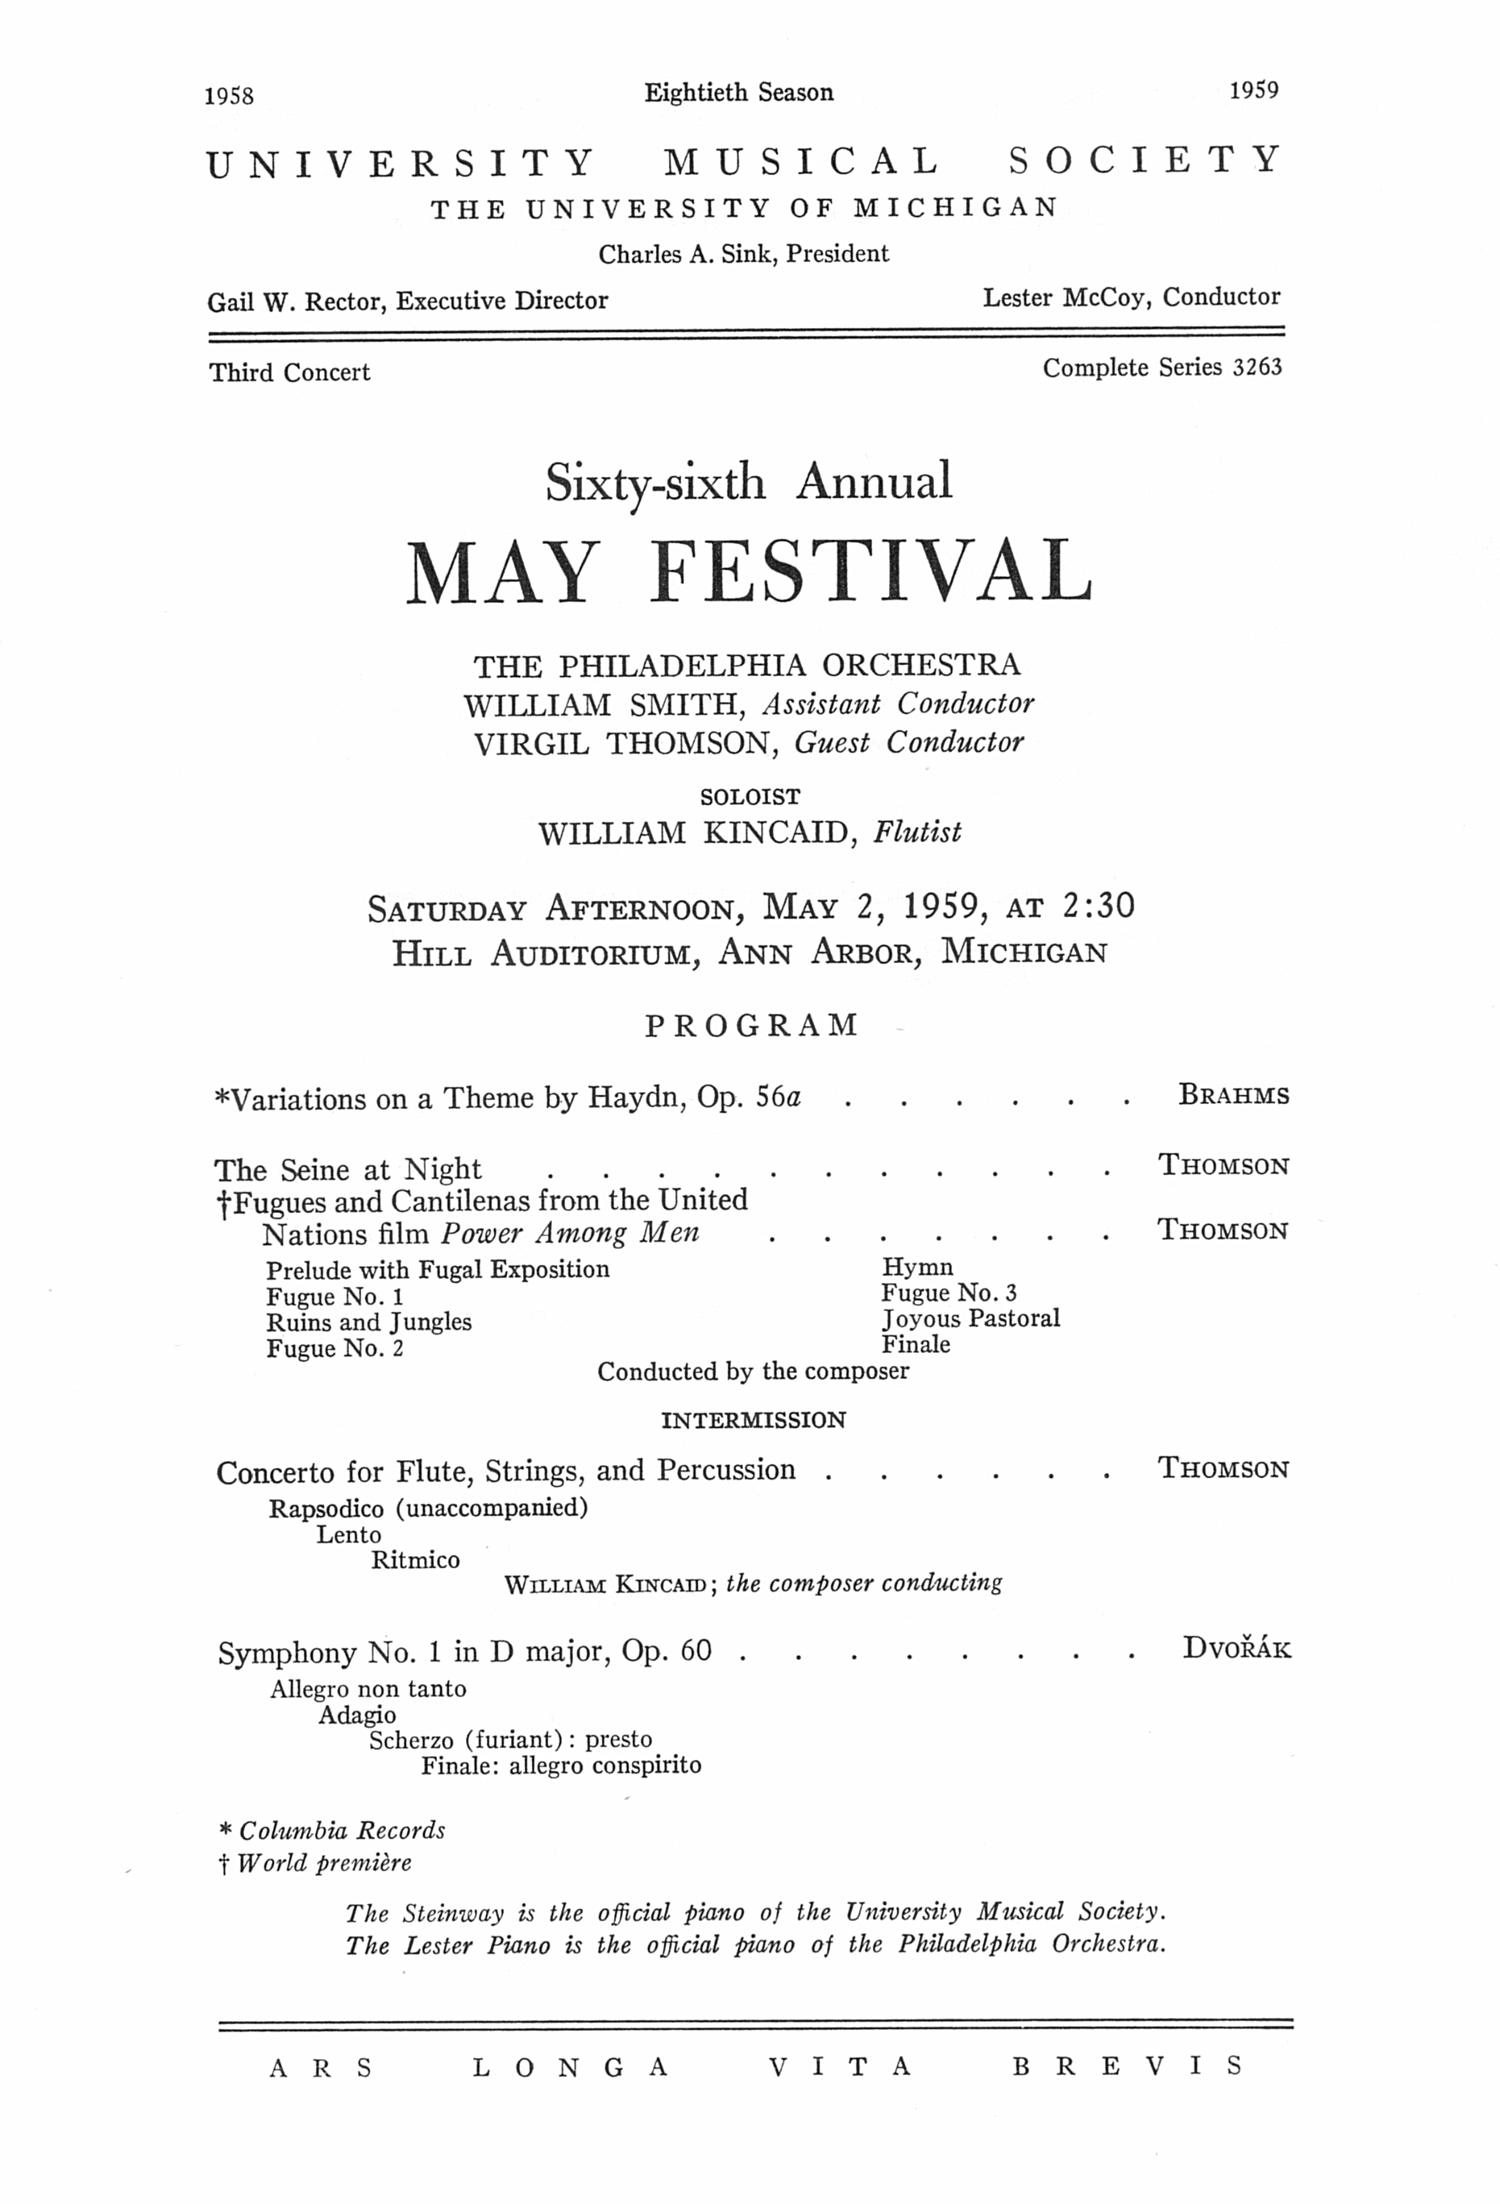 UMS Concert Program, May 2, 1959: Sixty-sixth Annual May Festival -- The Philadelphia Orchestra image